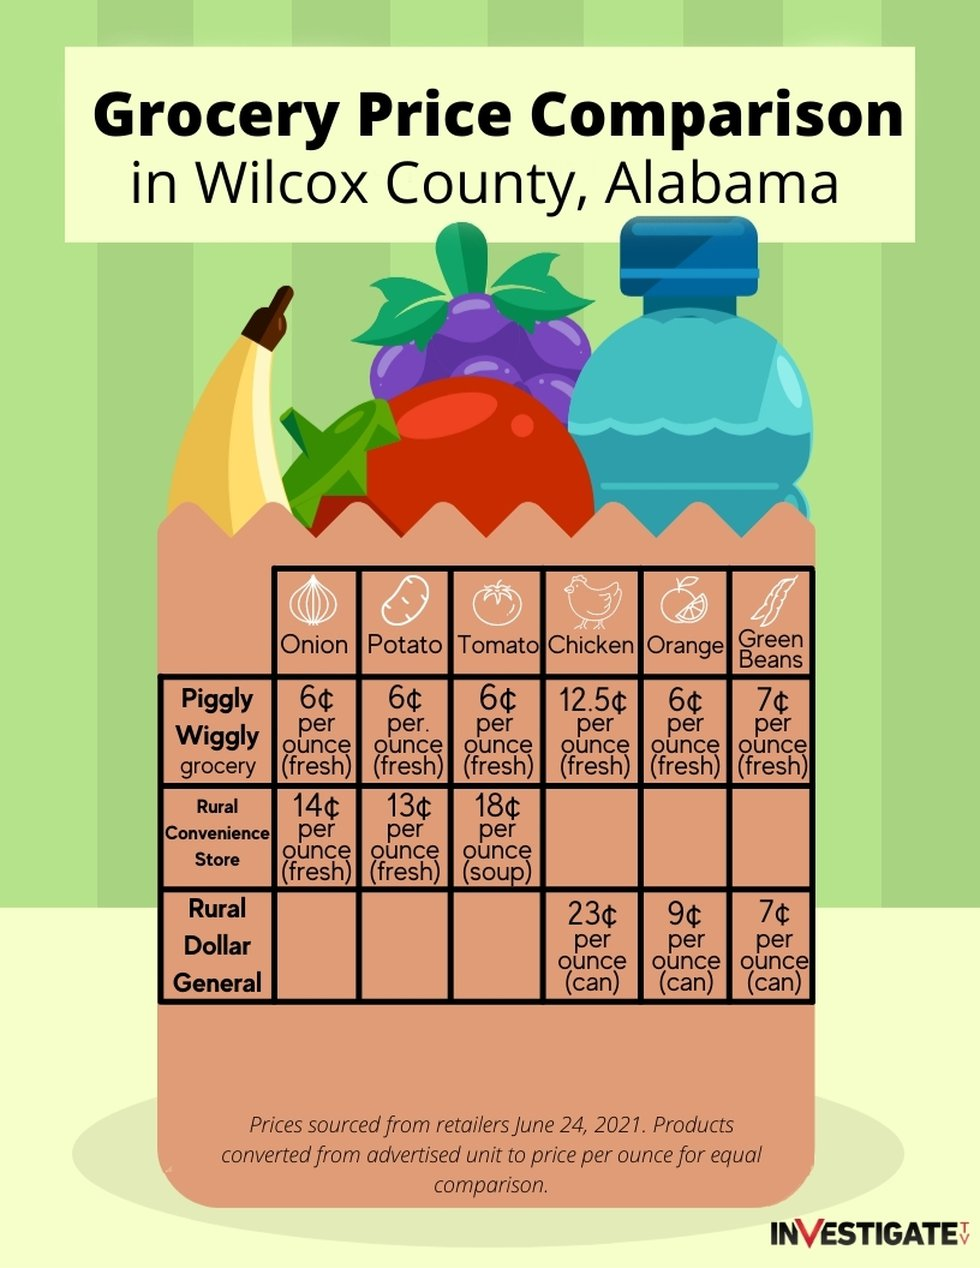 InvestigateTV compared prices for various grocery items in Wilcox County in June 2021....